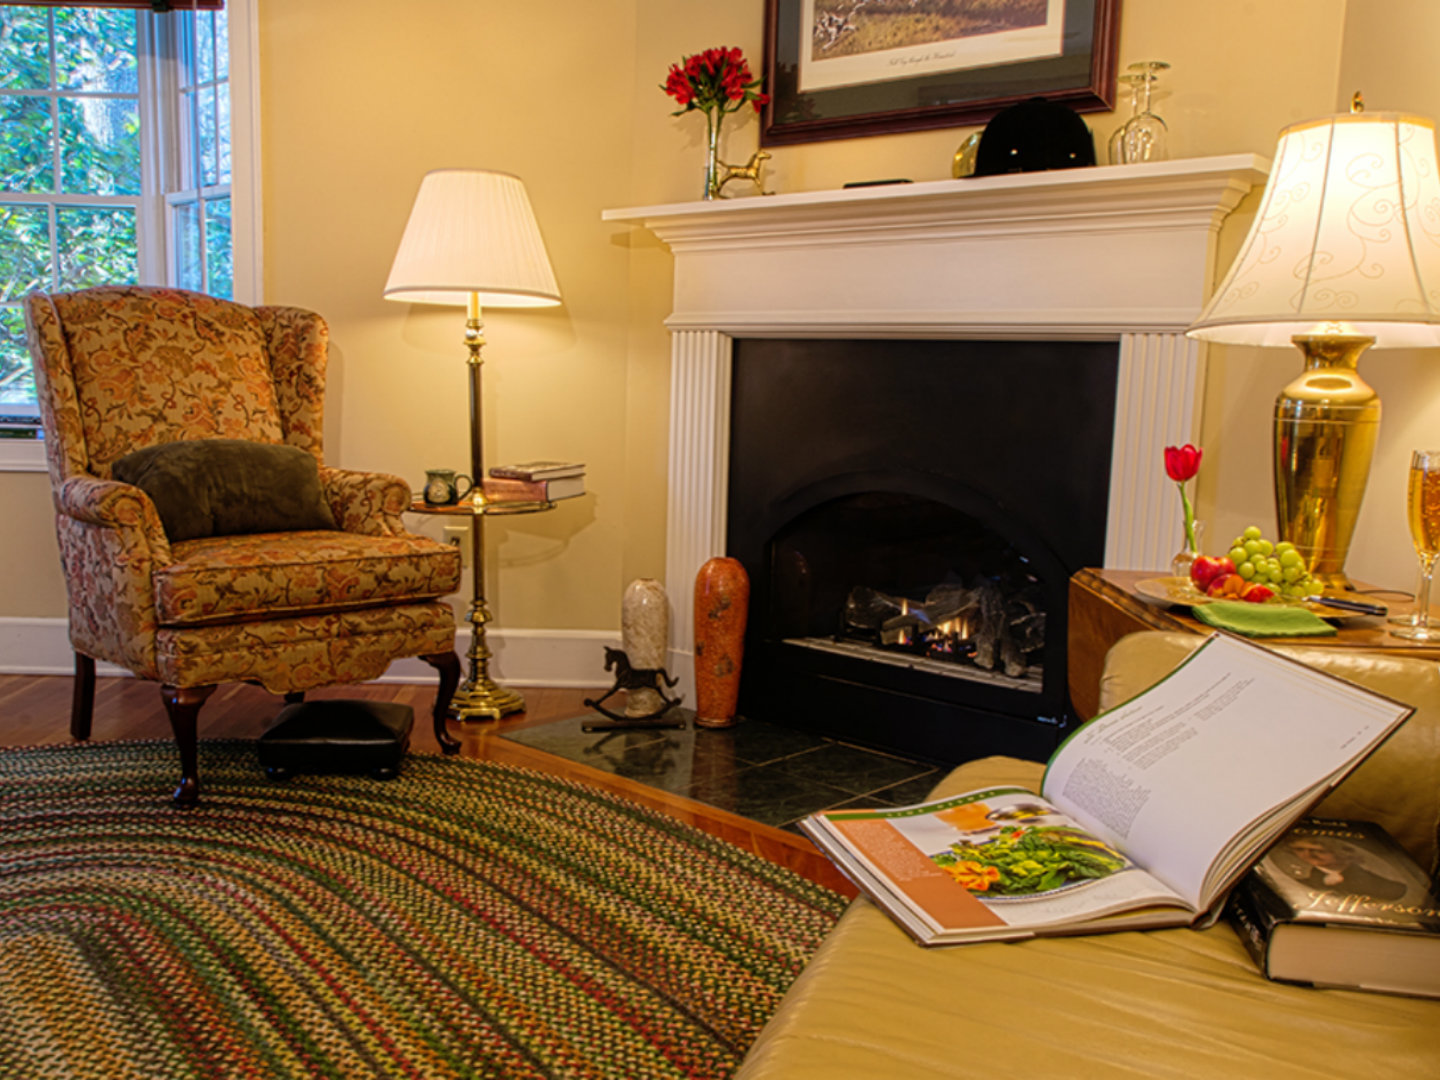 A living room filled with furniture and a fire place at Foxfield Inn.